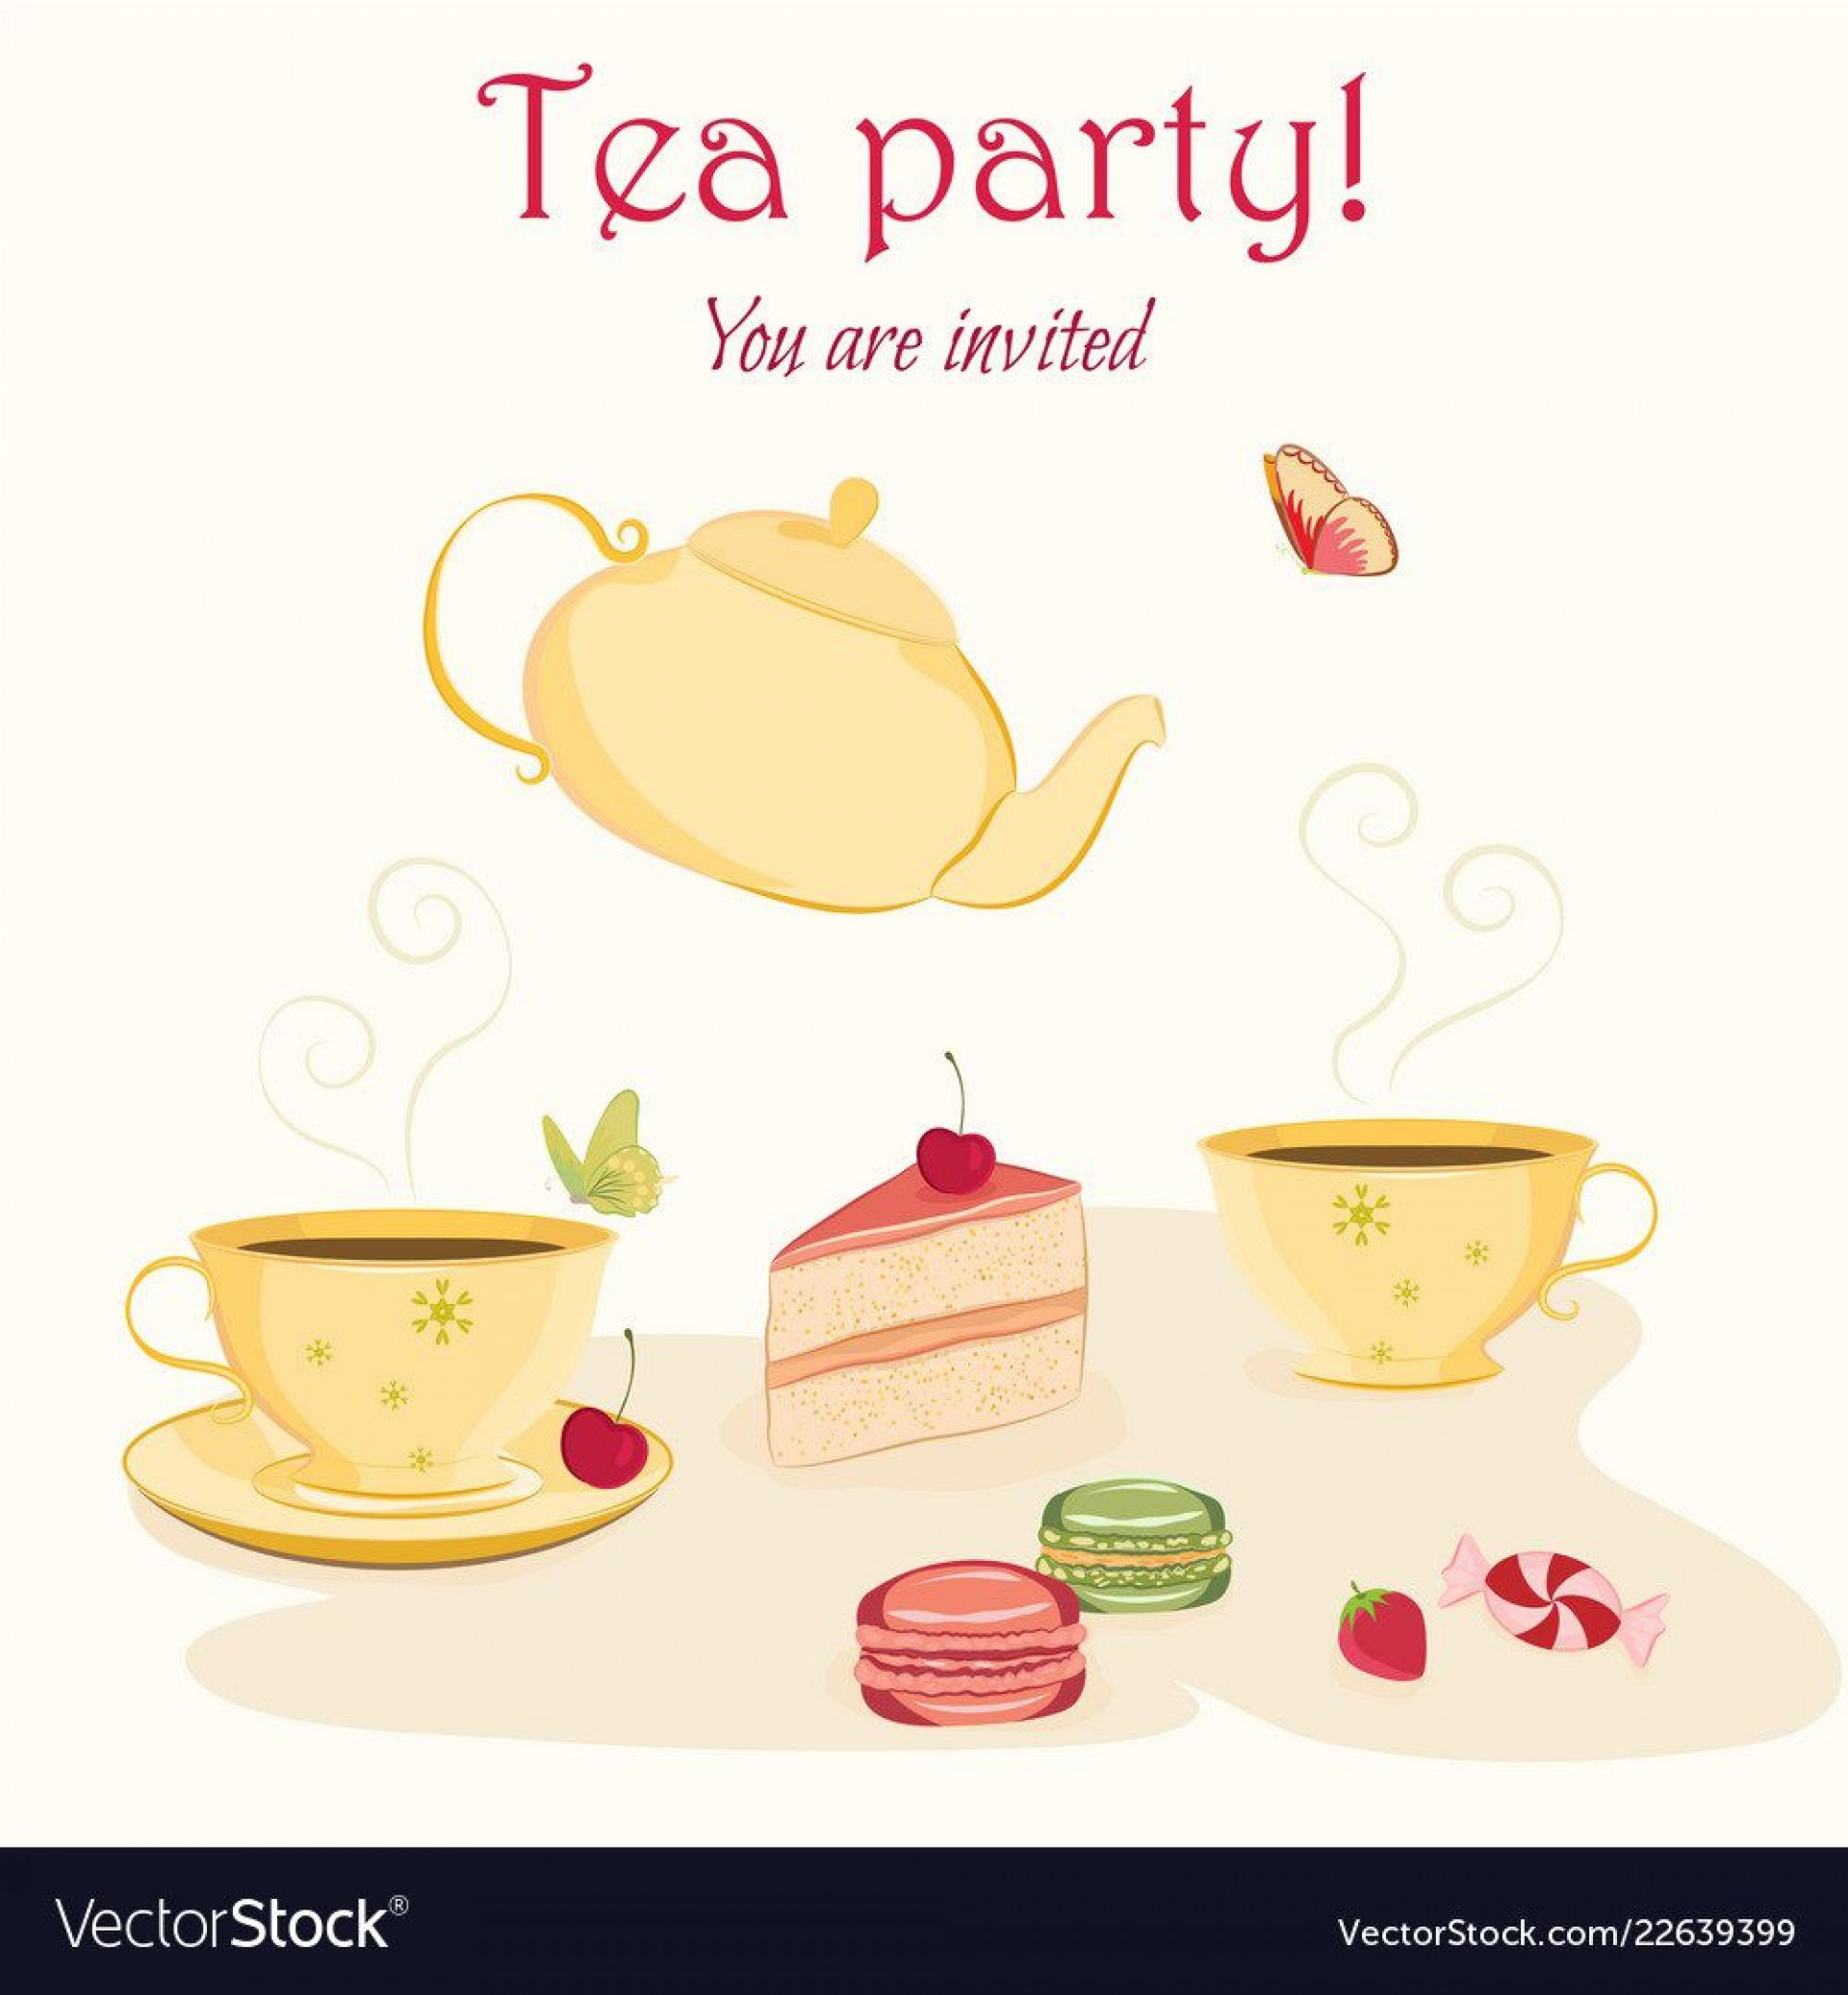 007 Exceptional Tea Party Invitation Template Photo  Card Victorian Wording For Bridal Shower1920